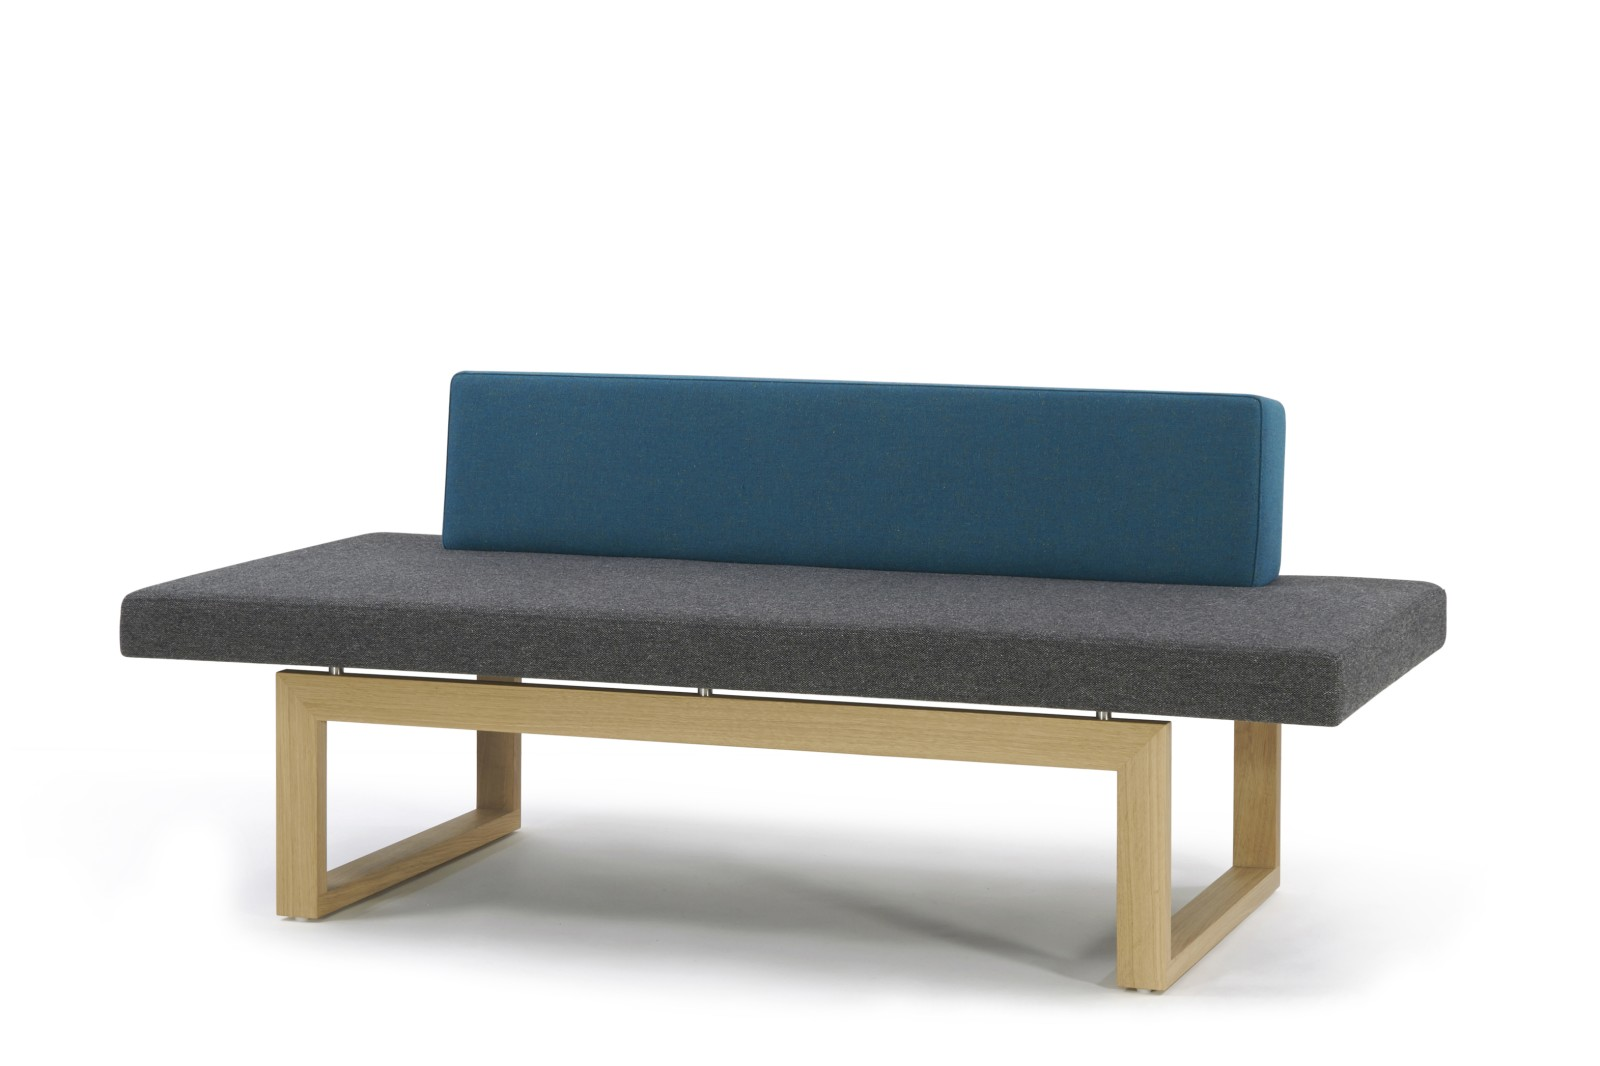 HM106G Quiet Seating Sofa Camira Intervene Oak Base